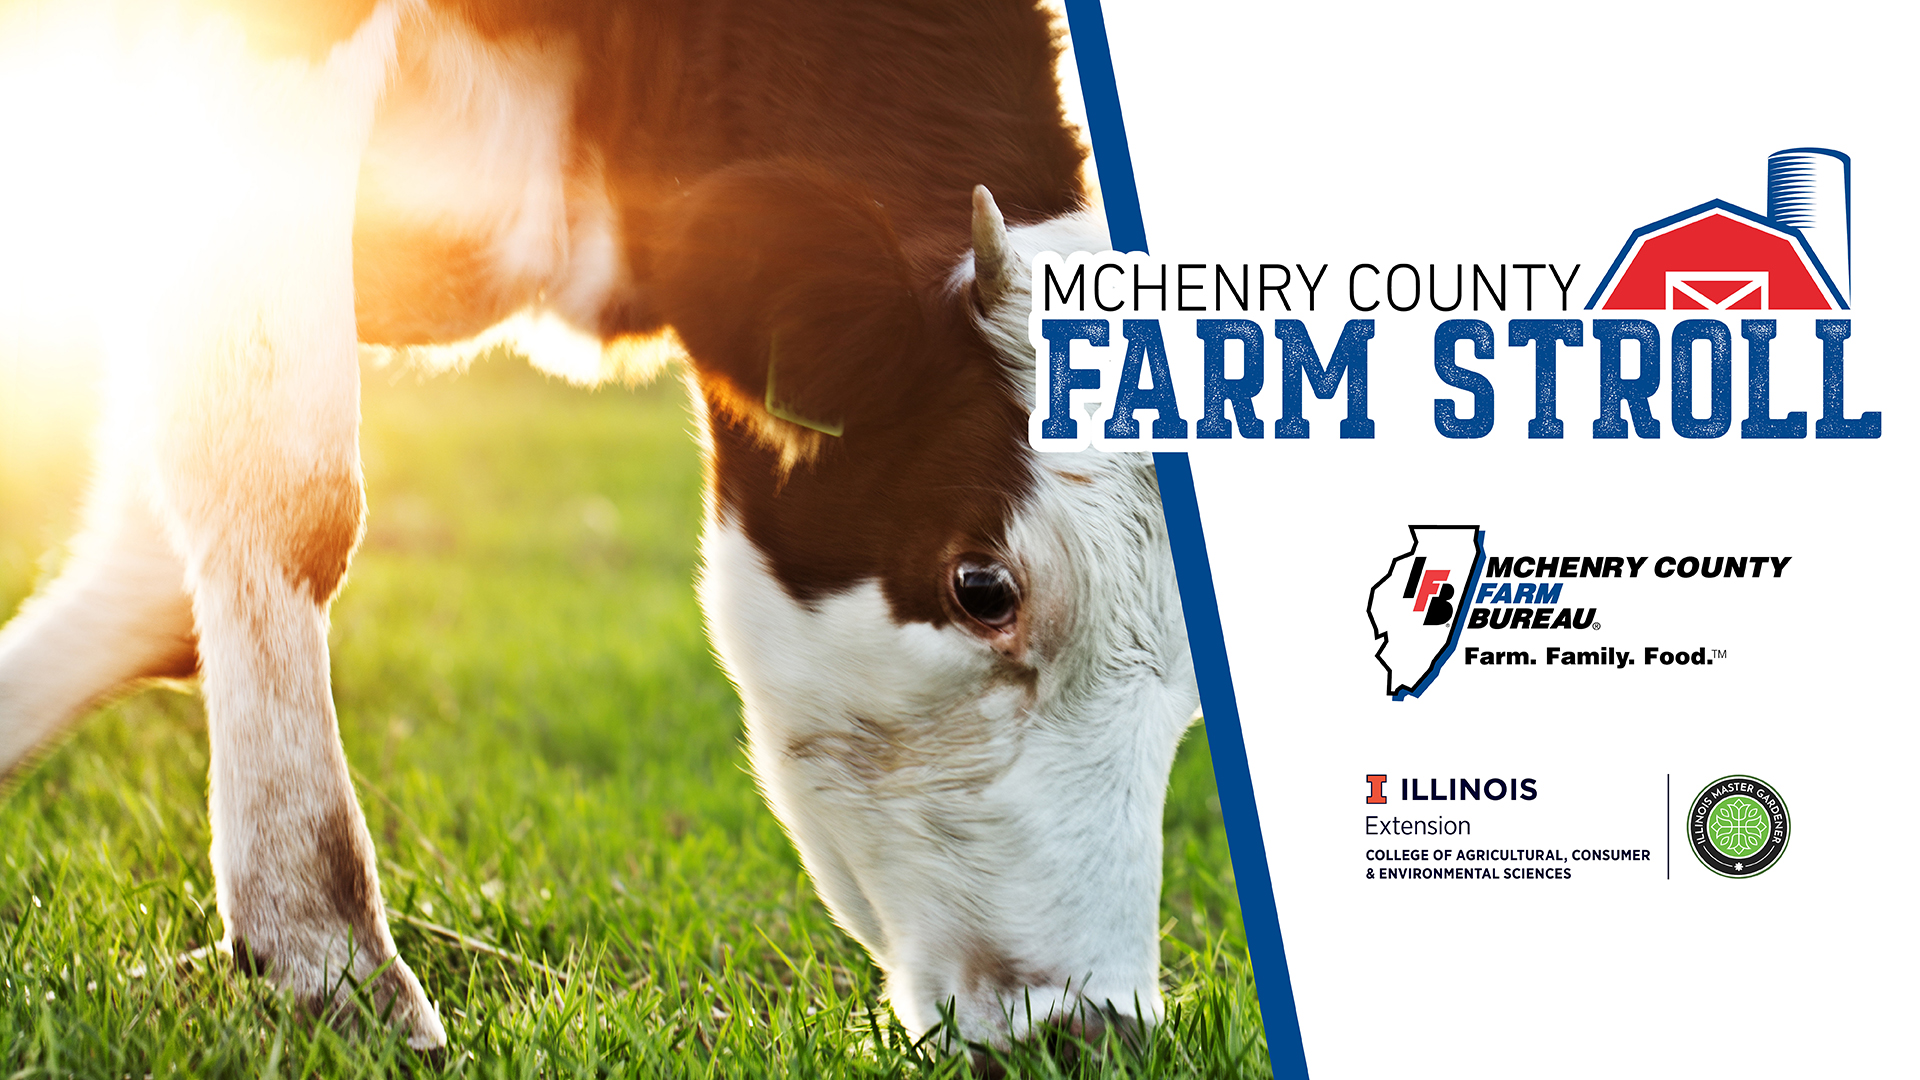 McHenry Farm Stoll with cow and logos